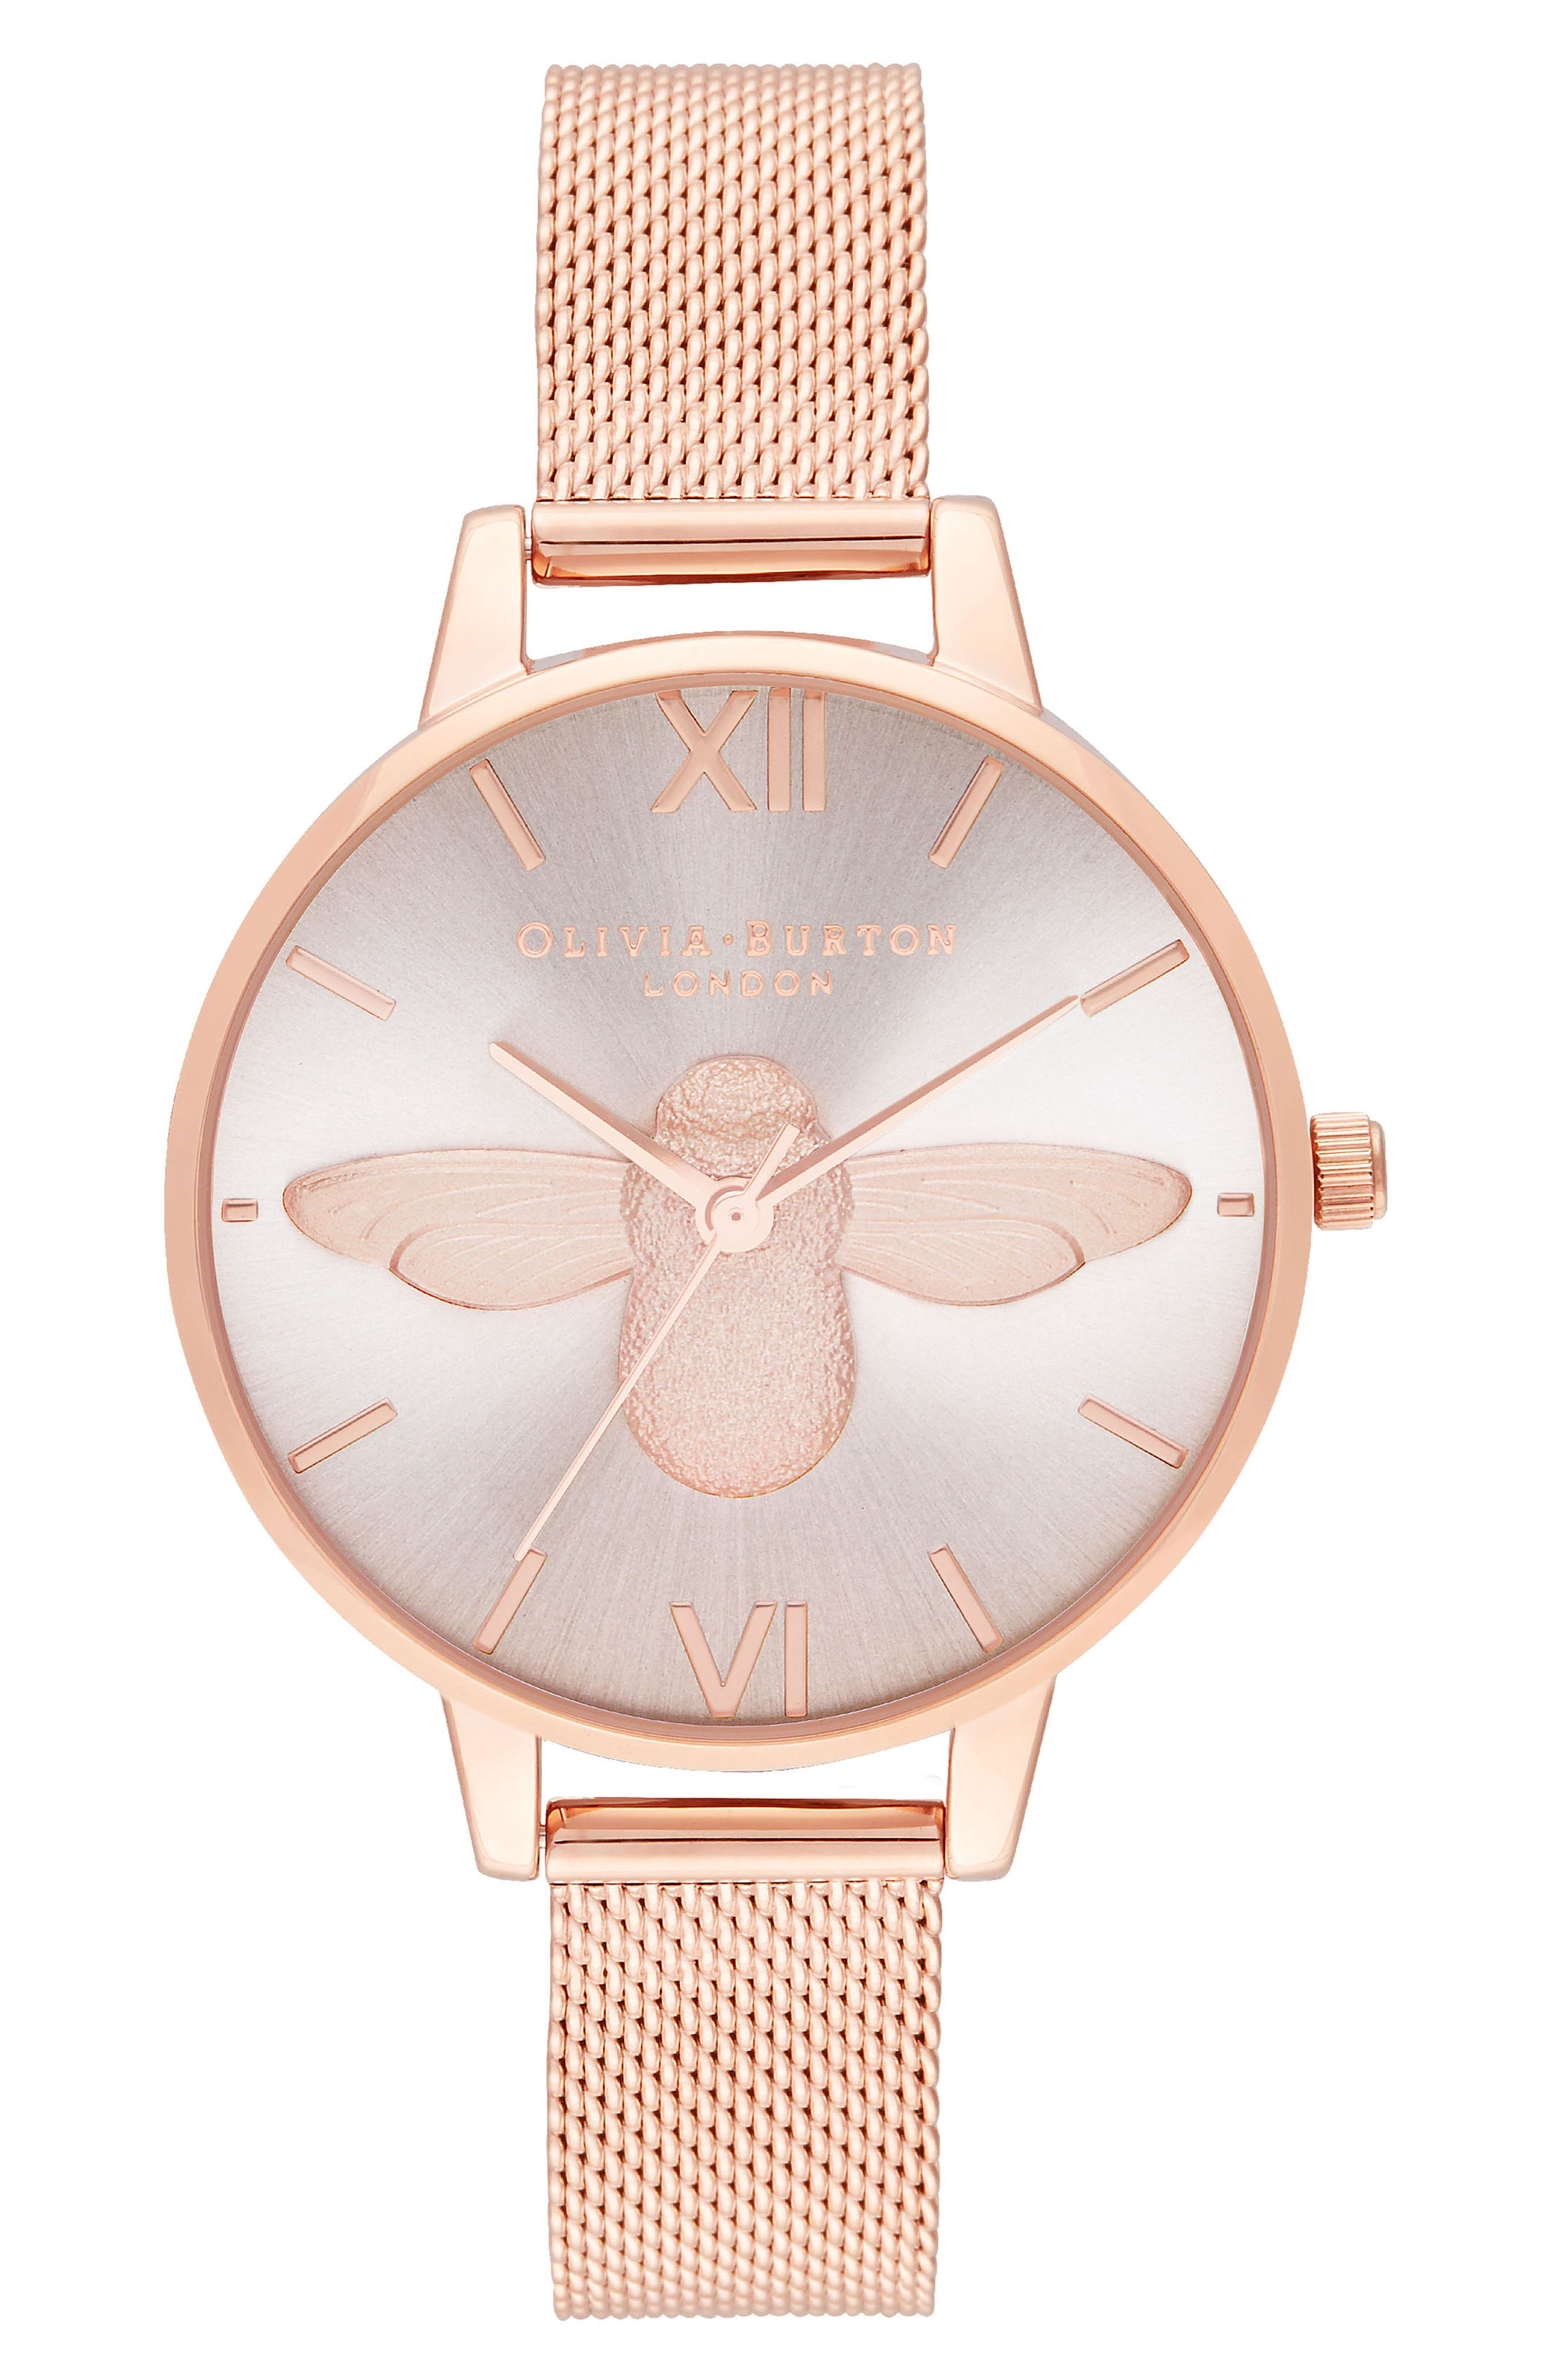 3D Bee Mesh Strap Watch, 34mm, Main, color, ROSE GOLD/SUNRAY/ ROSE GOLD